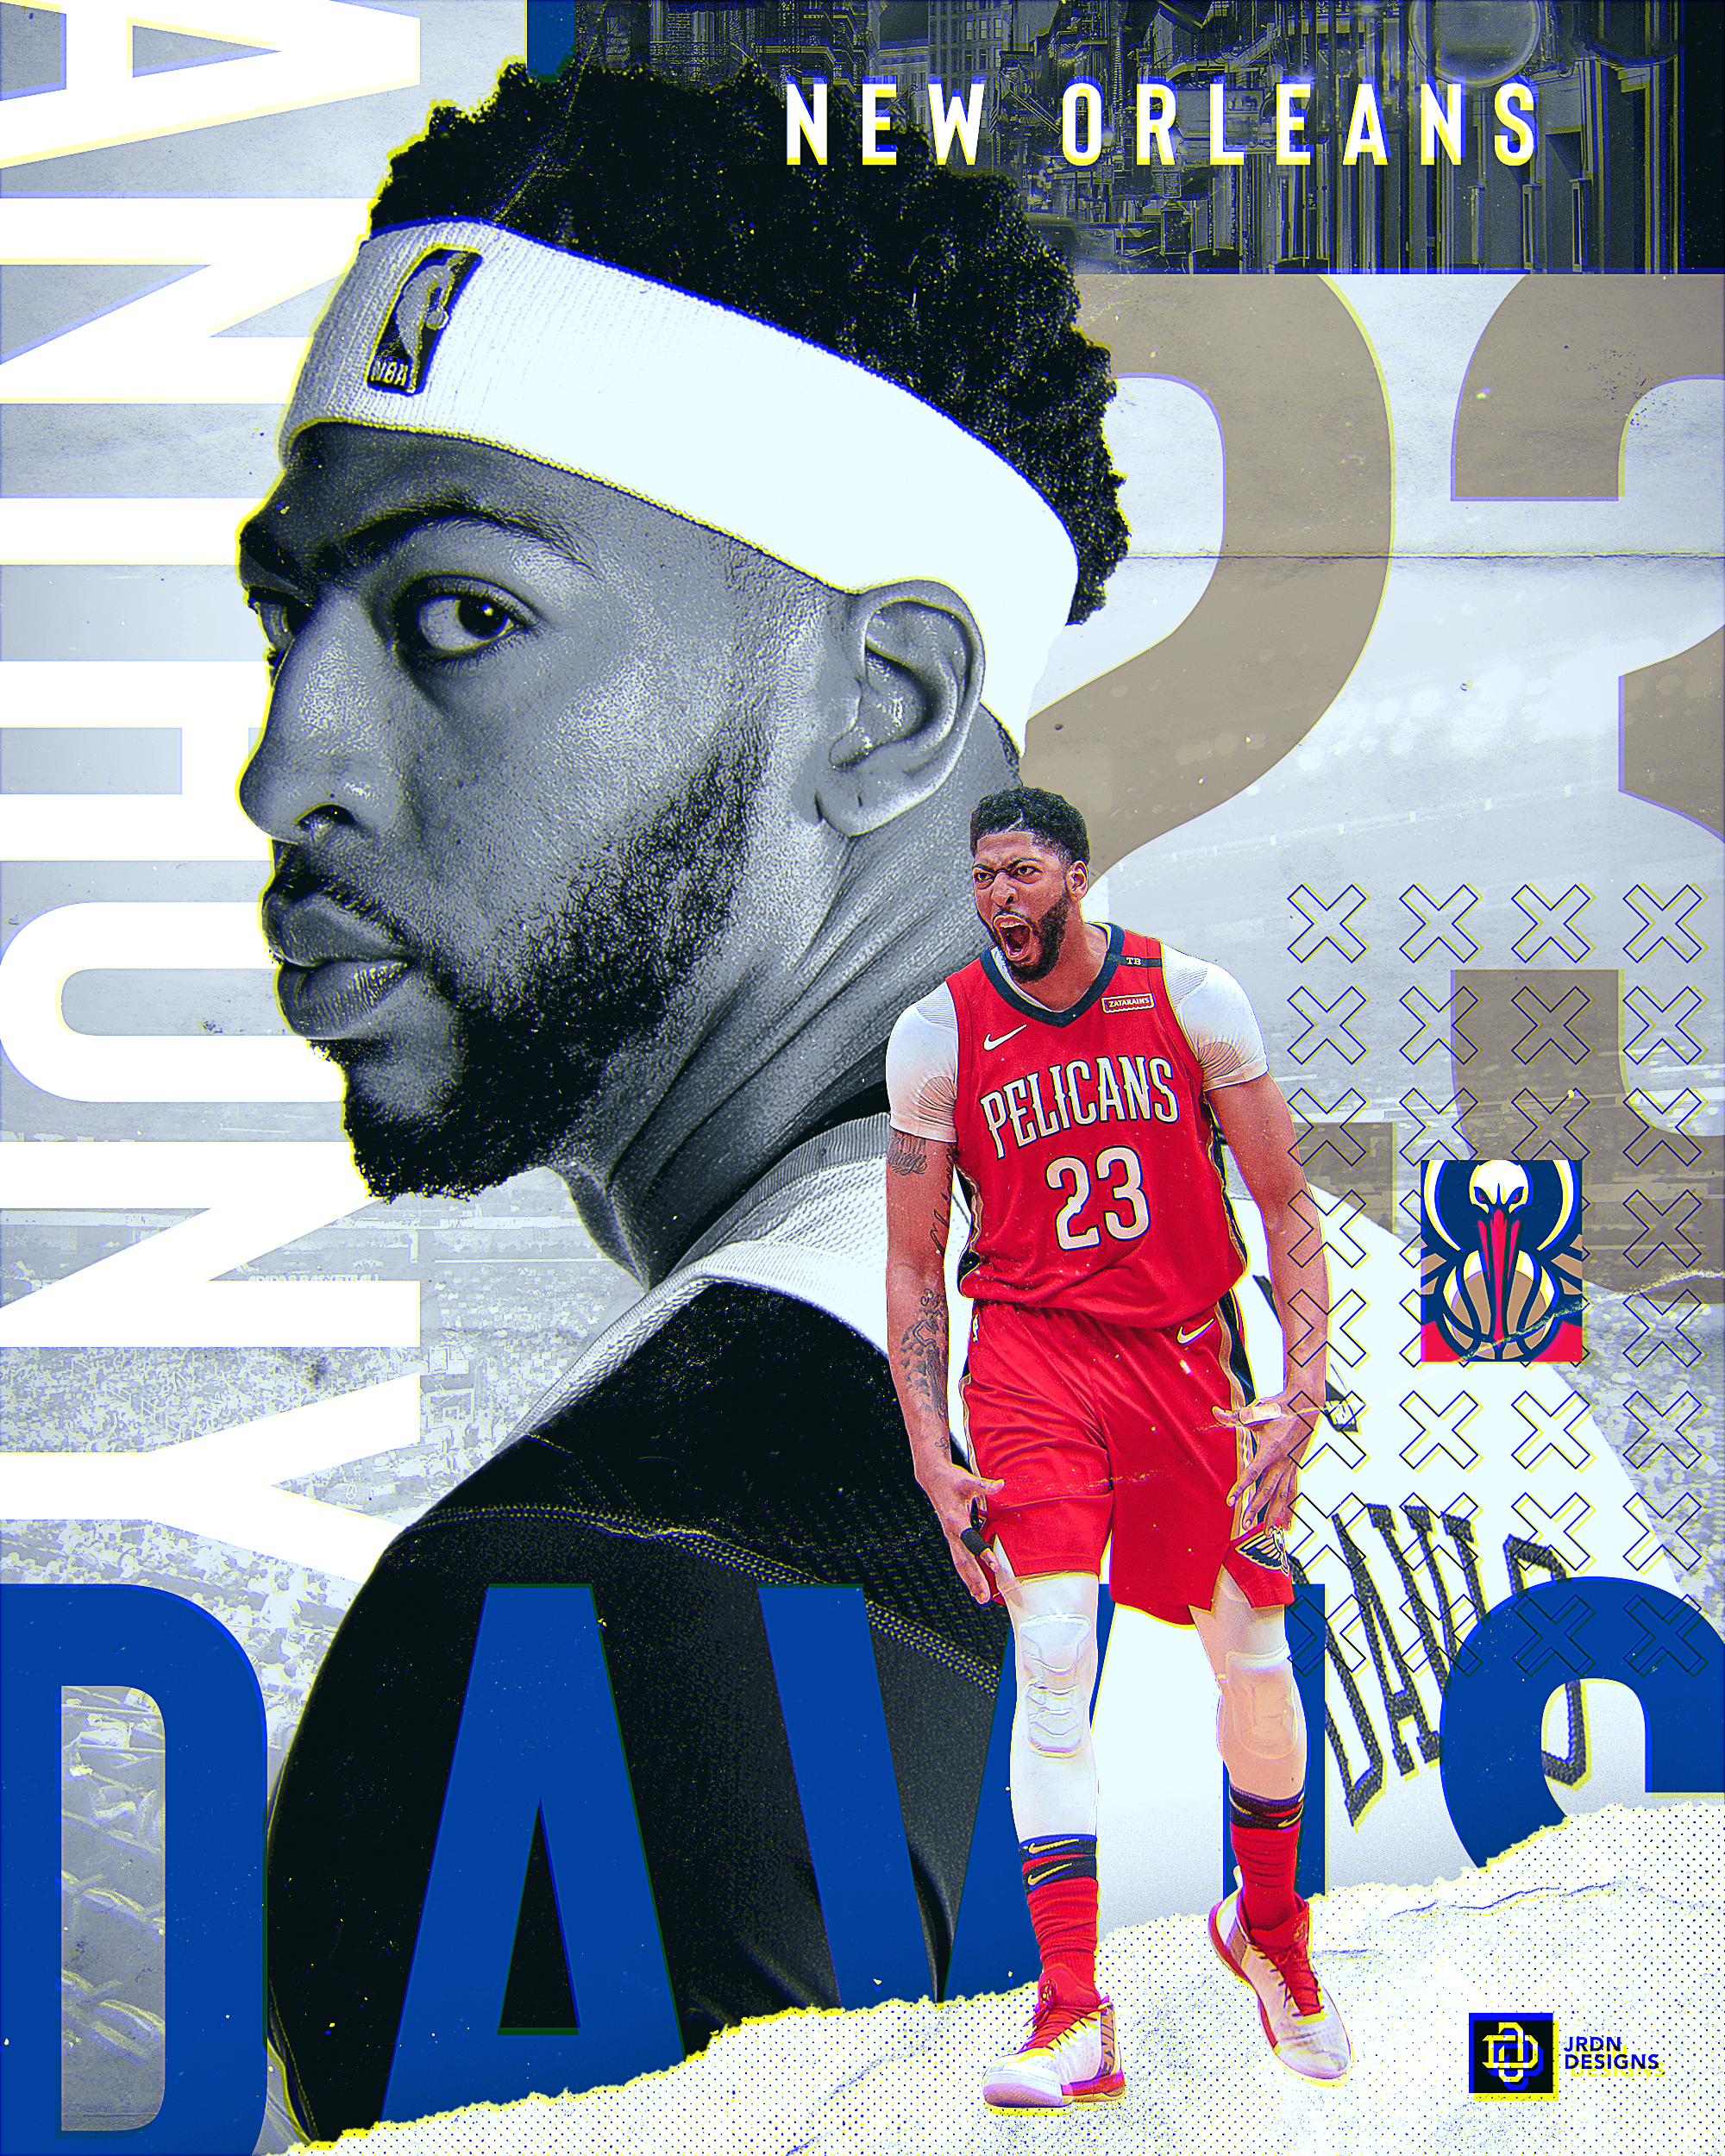 Anthony Davis New Orleans Pelicans Nba On Behance Anthony Davis New Orleans Pelicans Anthony Davis Pelicans